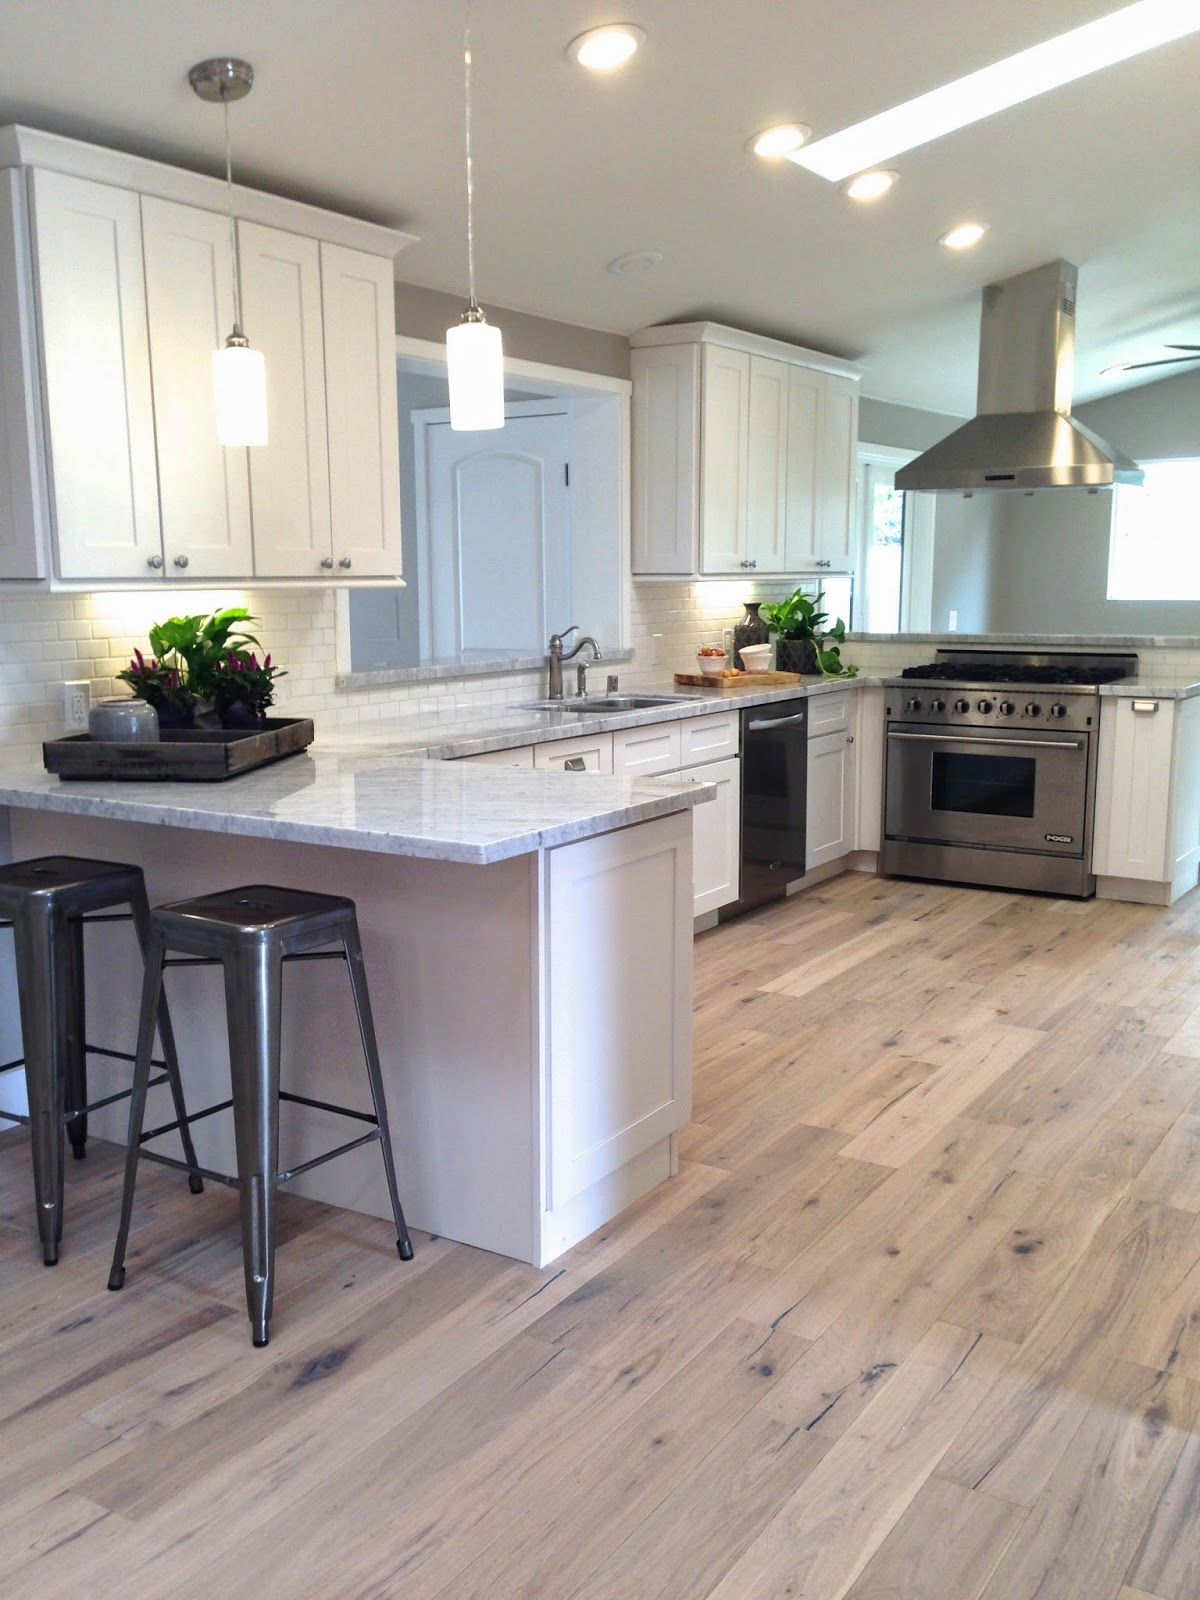 Best Of 2014 Rossmoor House Finished In 2019 Underfoot Flooring Ideas Home Decor Kitchen